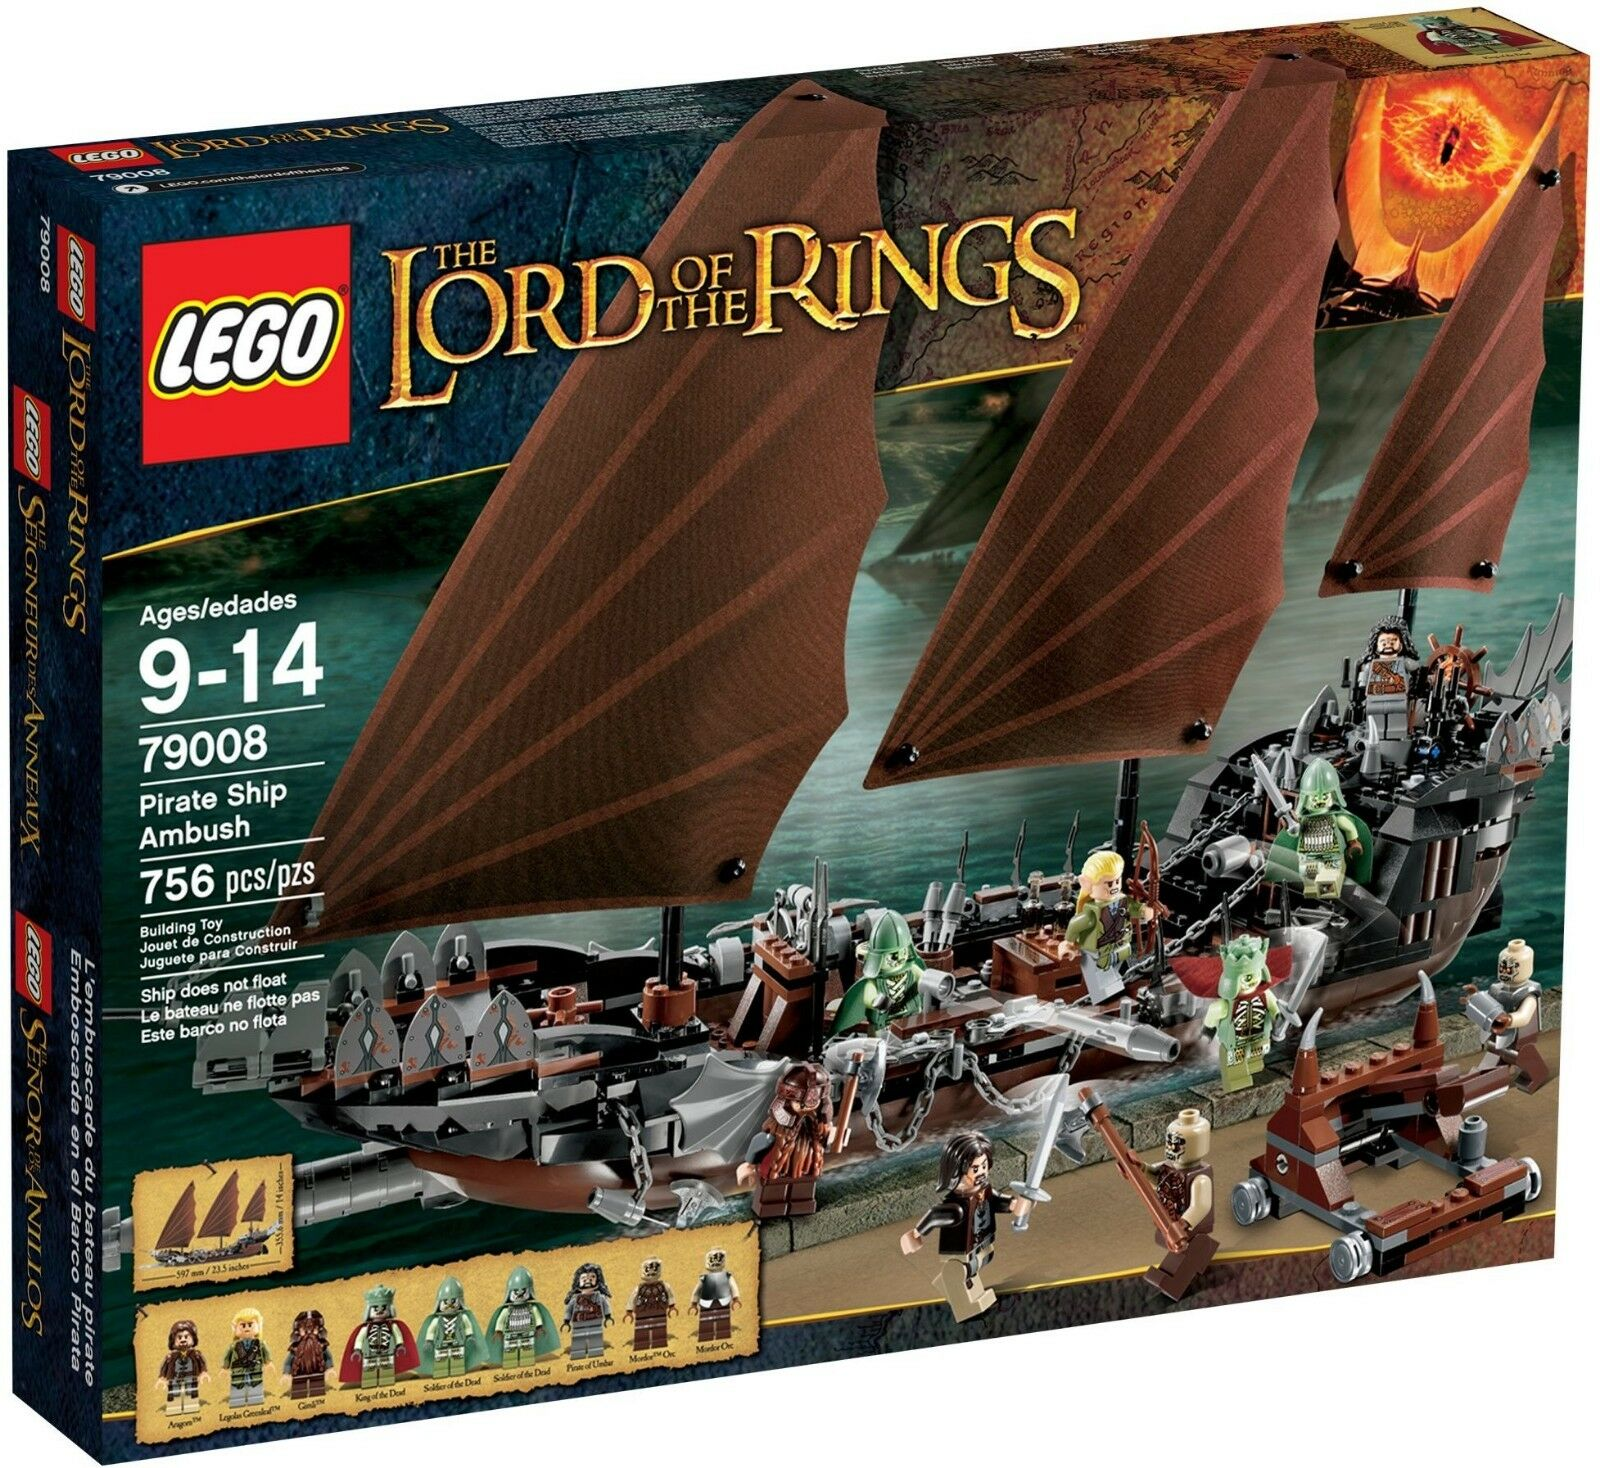 LEGO 79008 PIRATE SHIP AMBUSH THE HOBBIT LOTR RETIROT  BRAND NEW  FAST SHIPPING